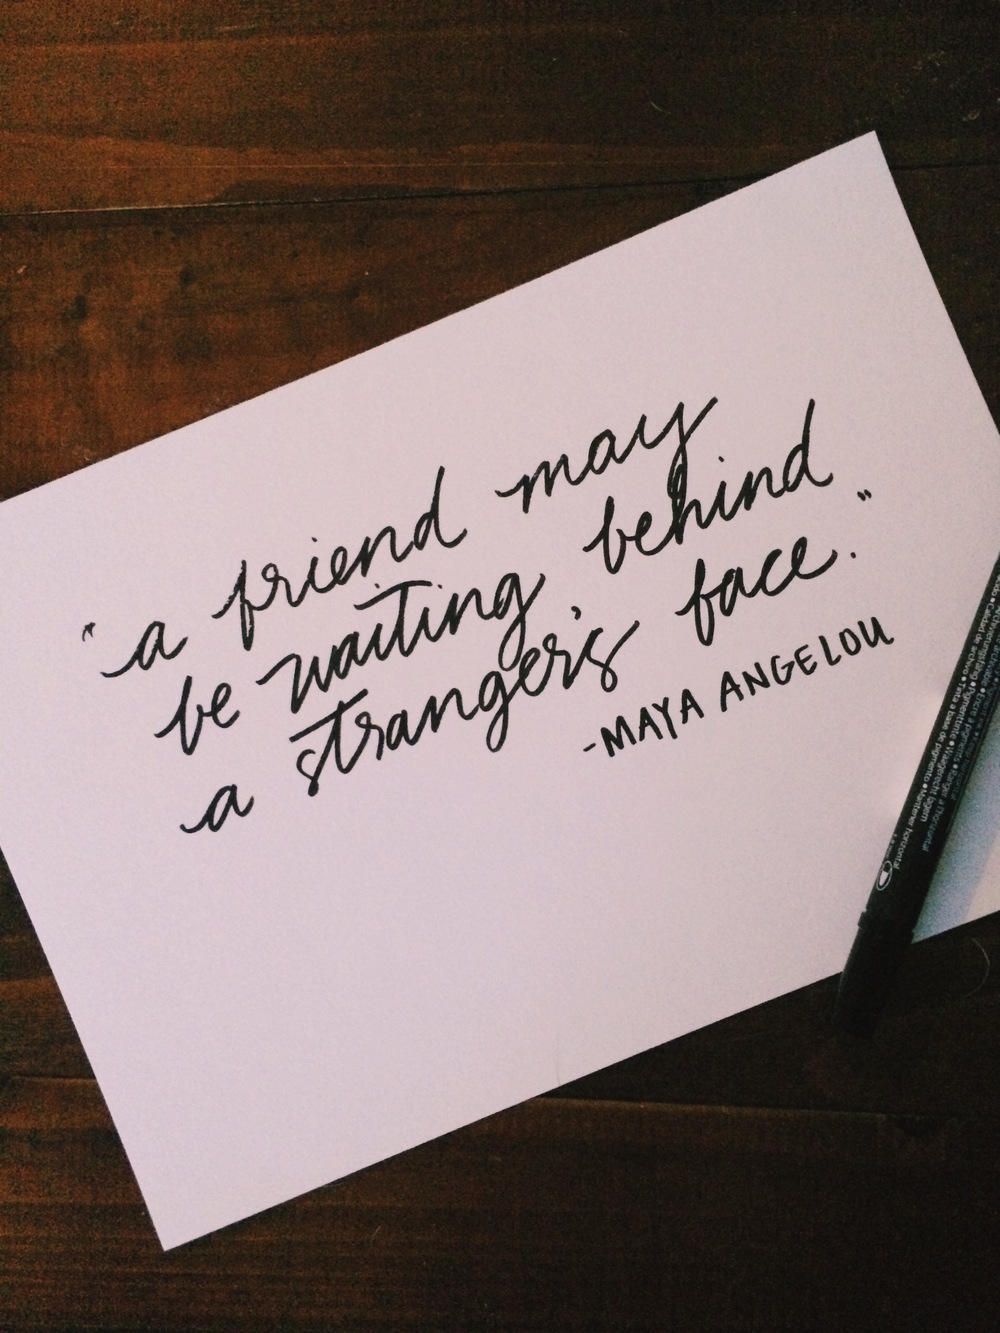 """a friend may be waiting behind a stranger's face."" - Maya Angelou"